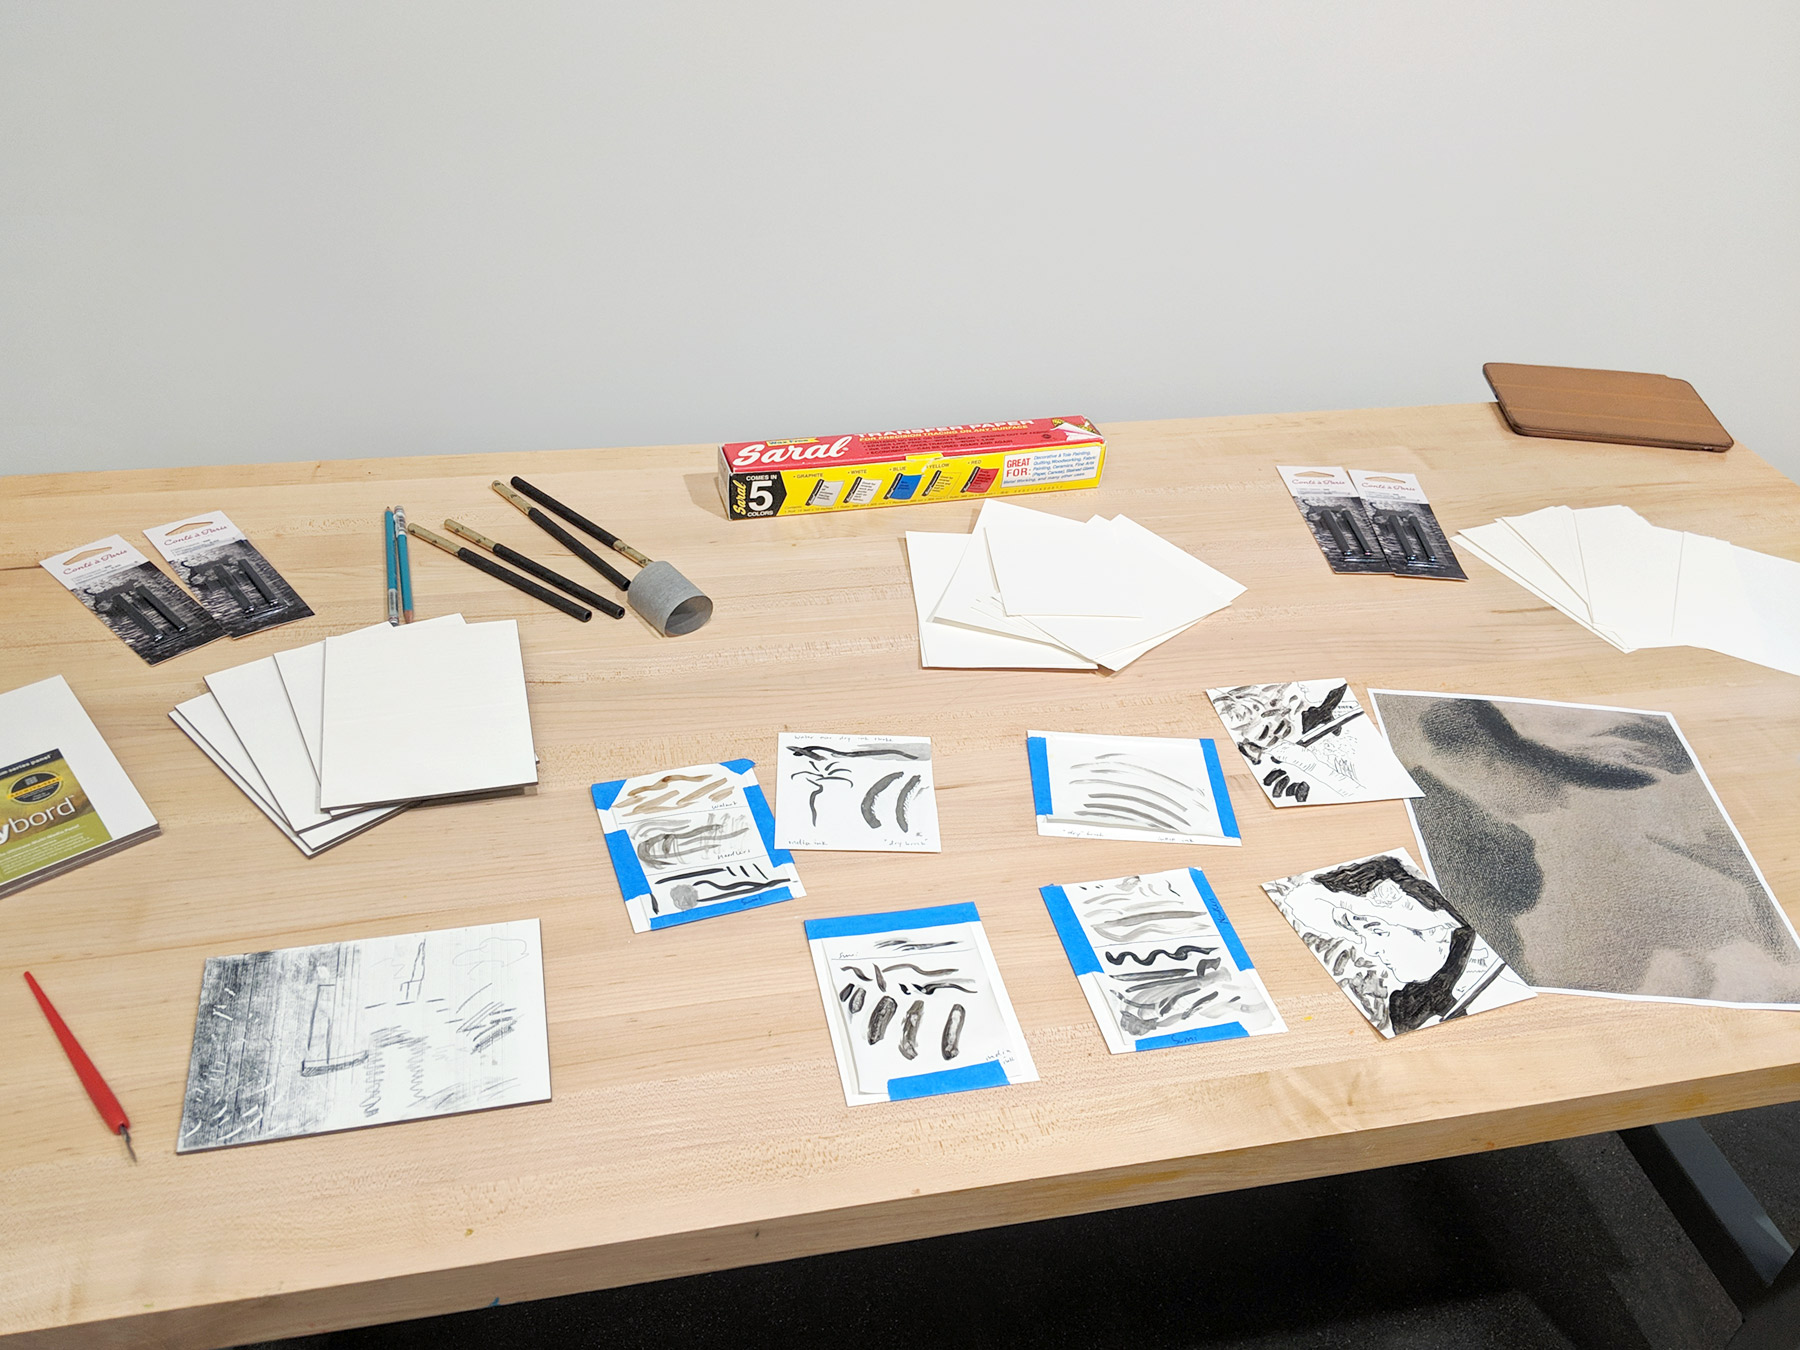 A table with a number of tools, materials, and test copies.